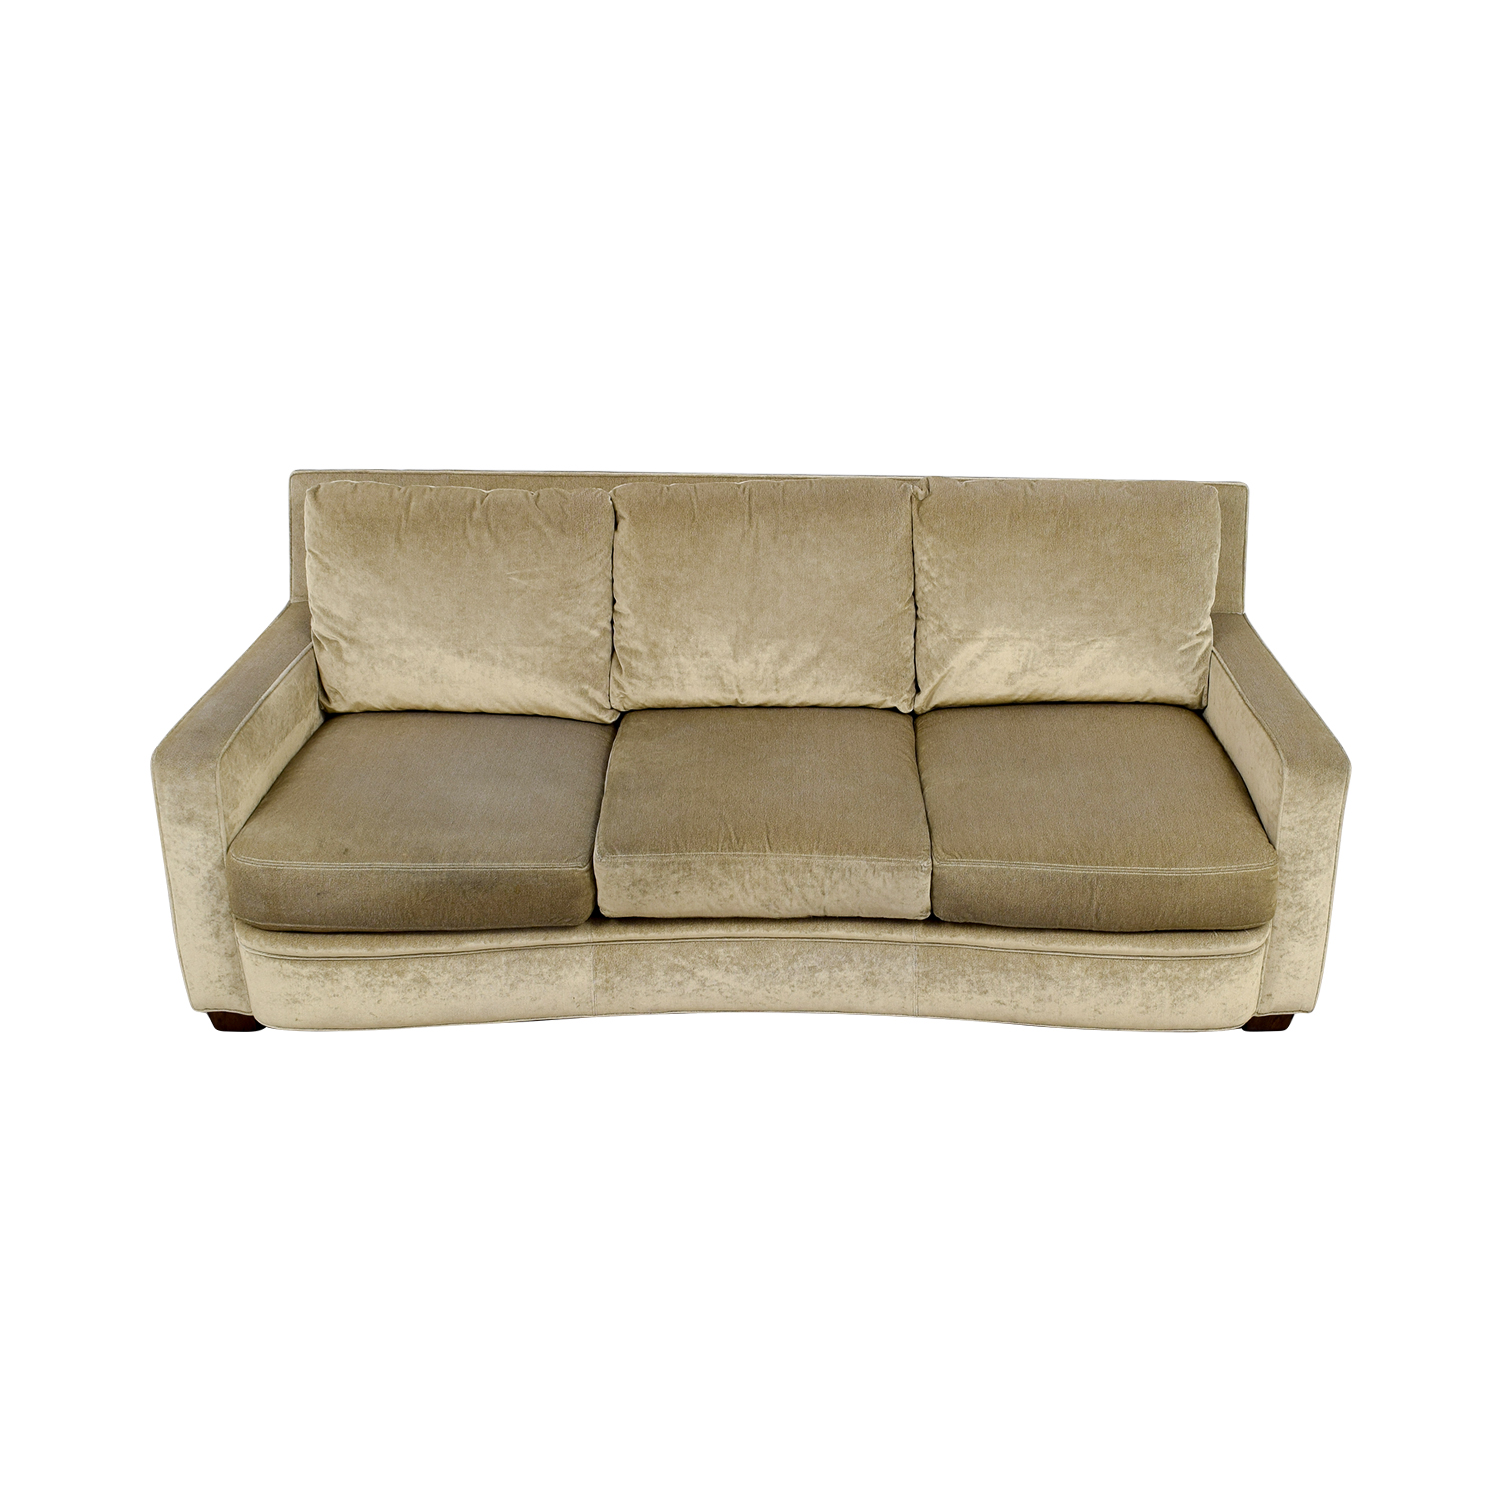 Kravit Furniture Kravit Furniture Beige Three-Cushion Curved Sofa Sofas